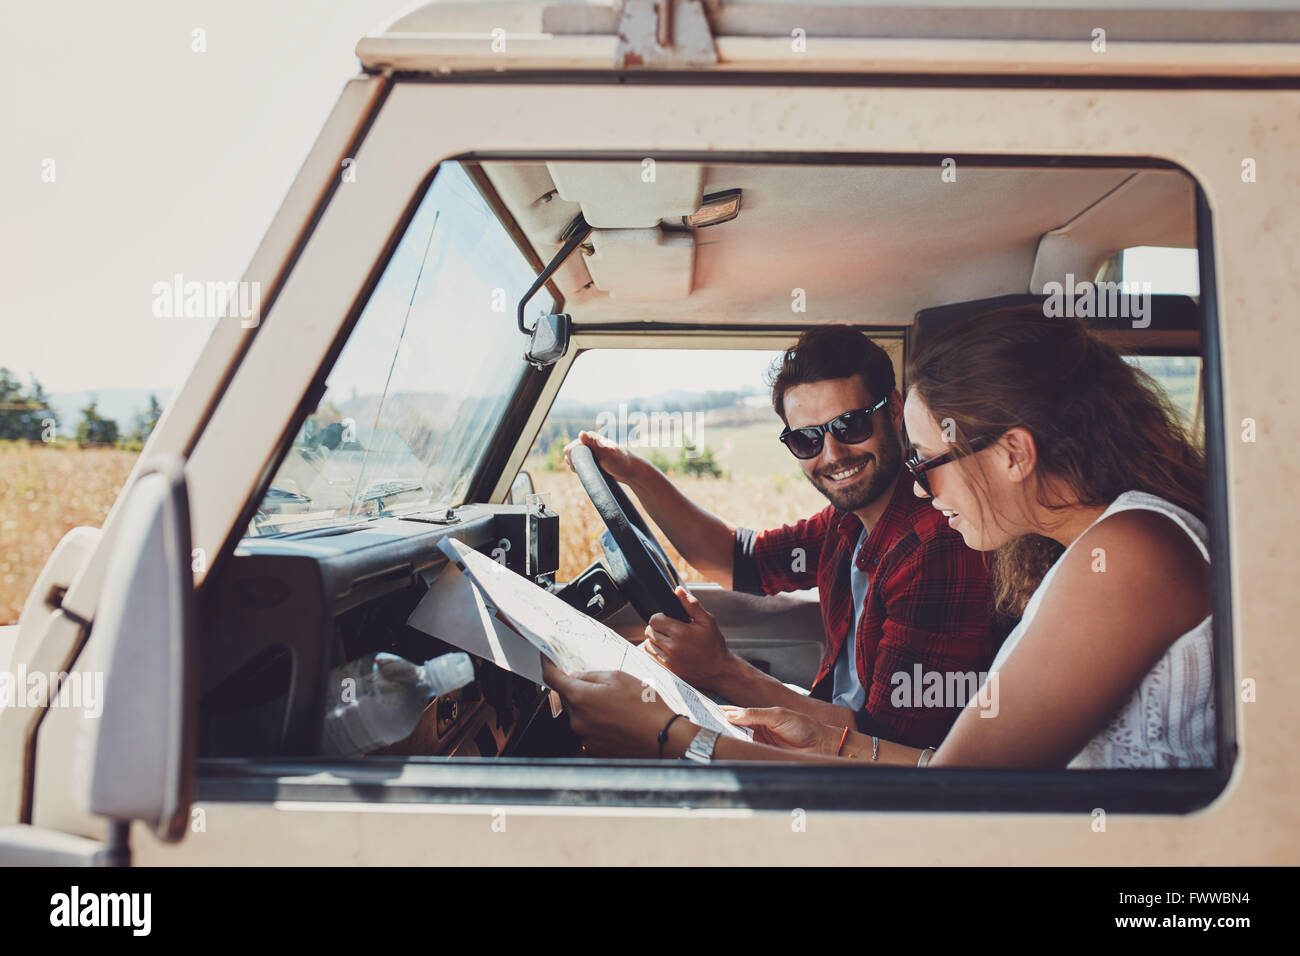 Man and woman on a road trip and reading a map together while seated inside their car. Happy young couple going - Stock Image